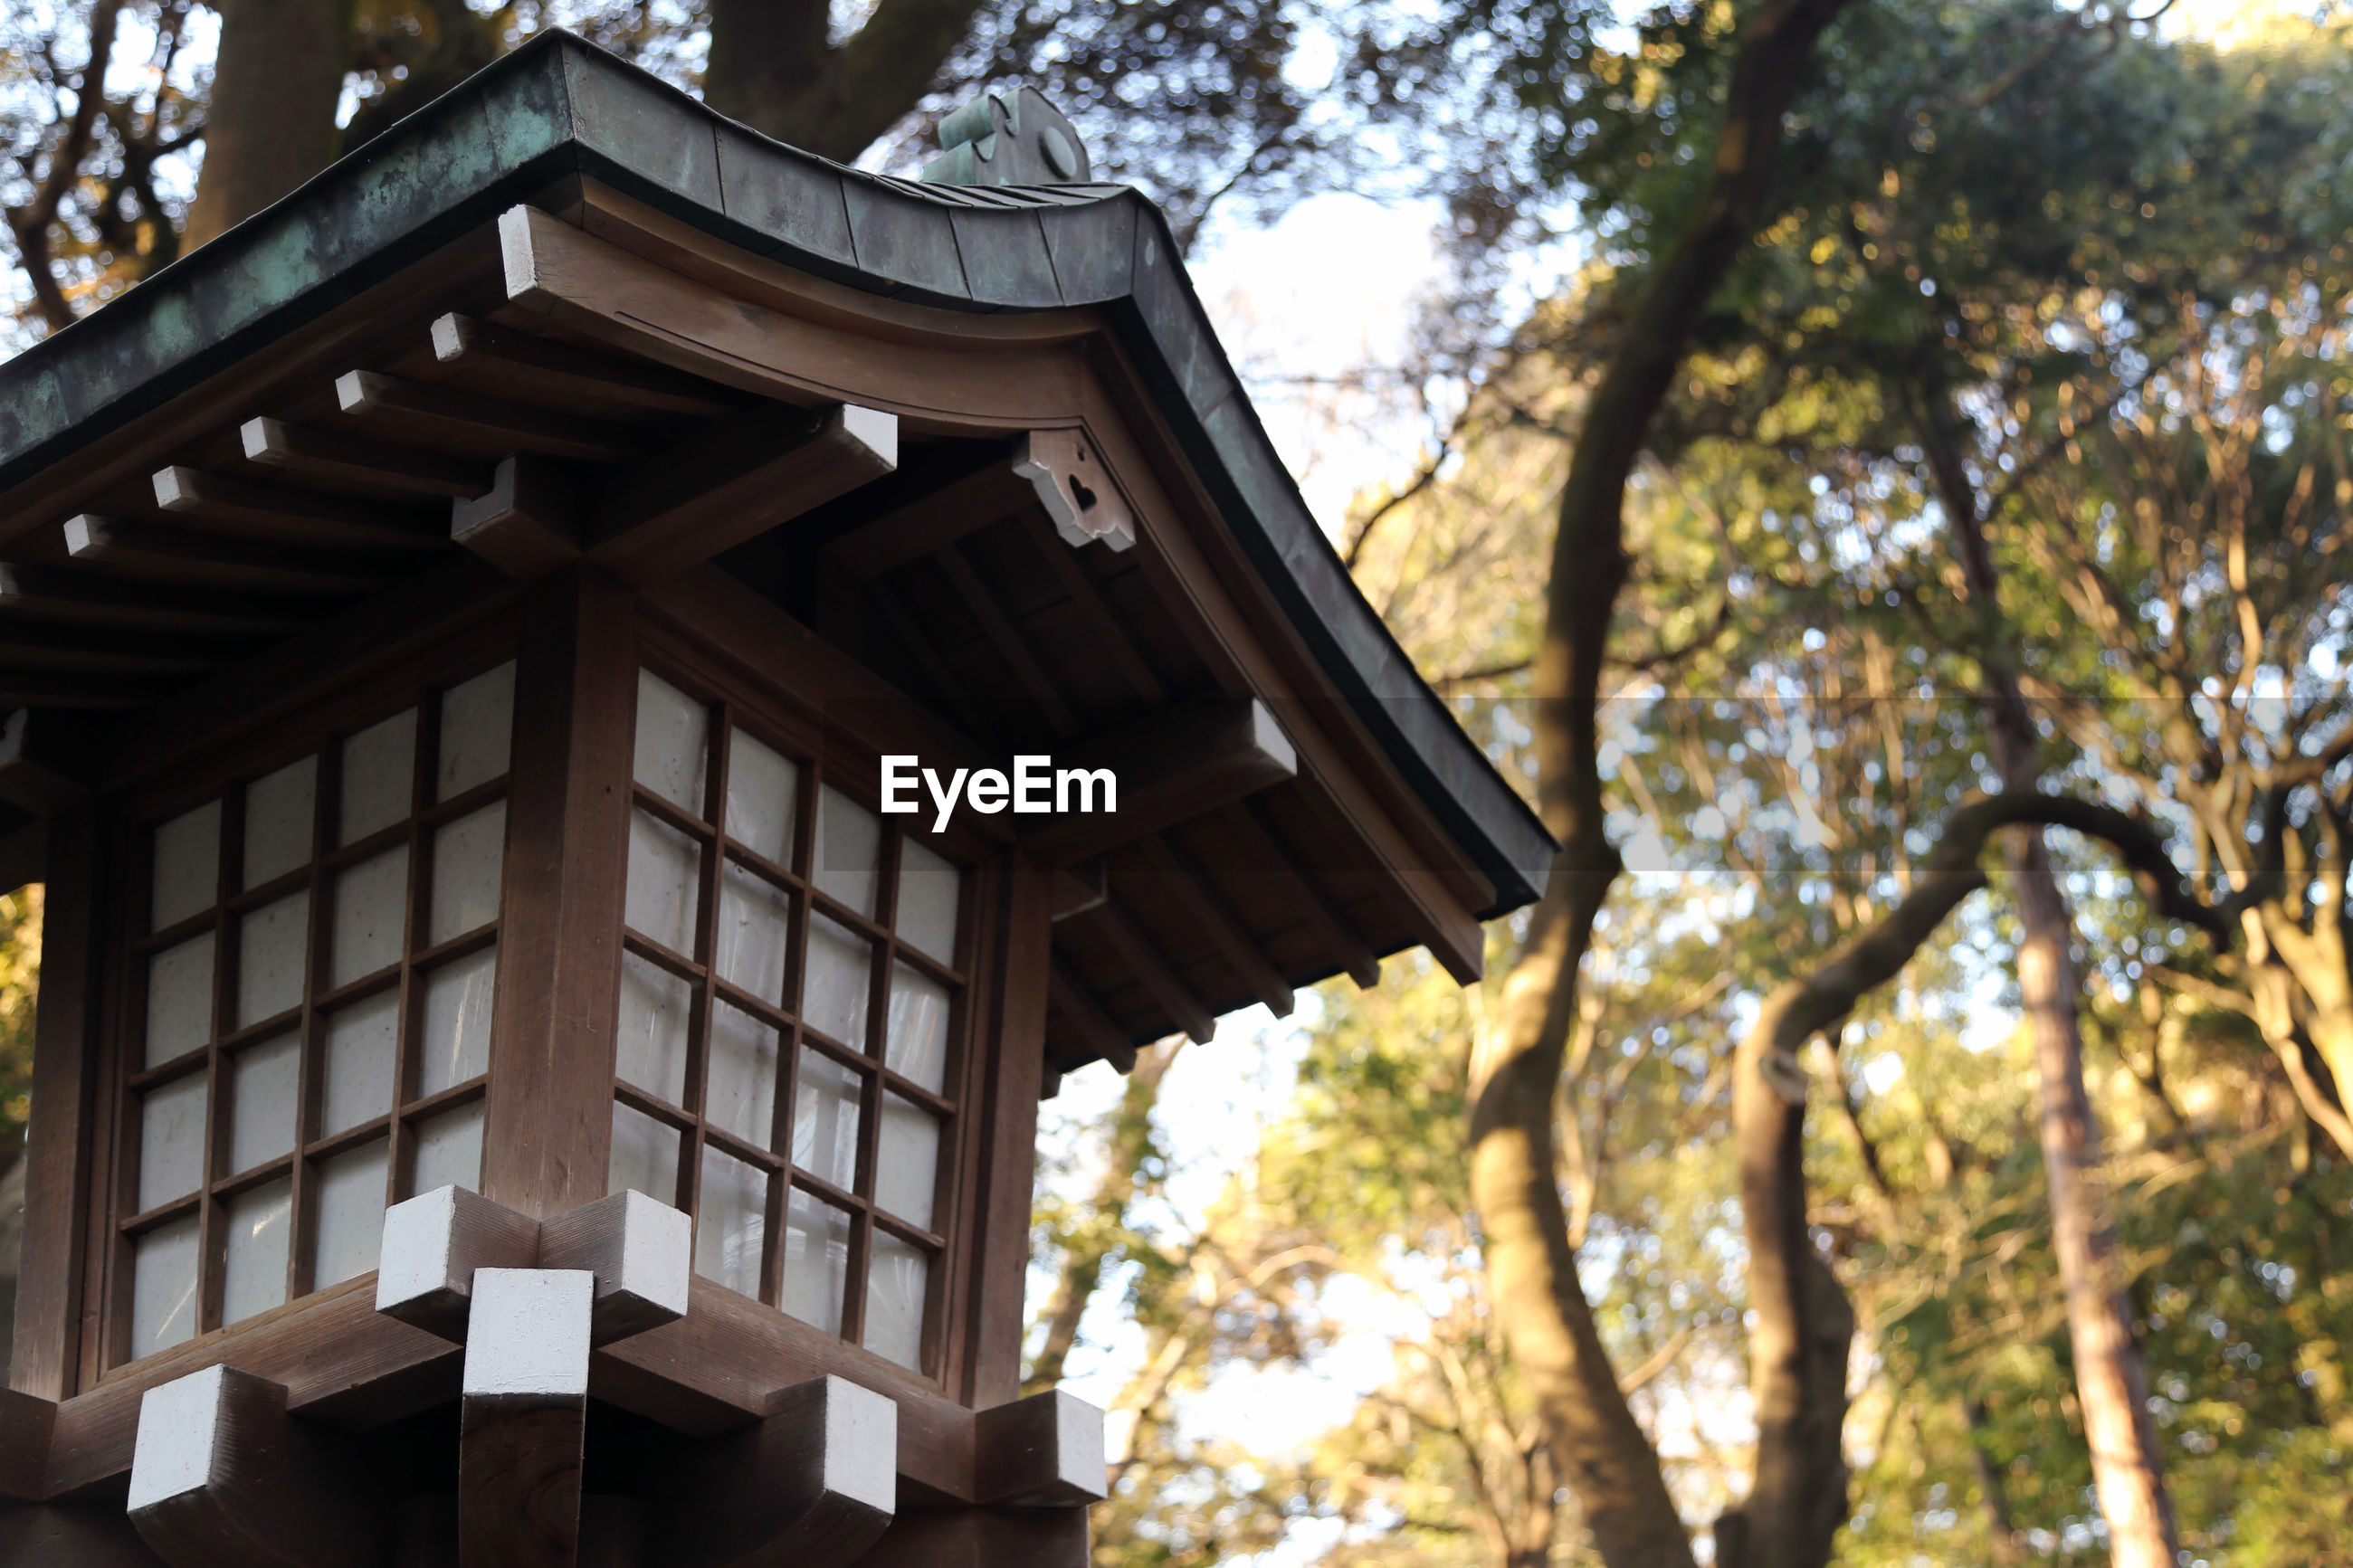 Low angle view of meiji-jingu shrine against trees